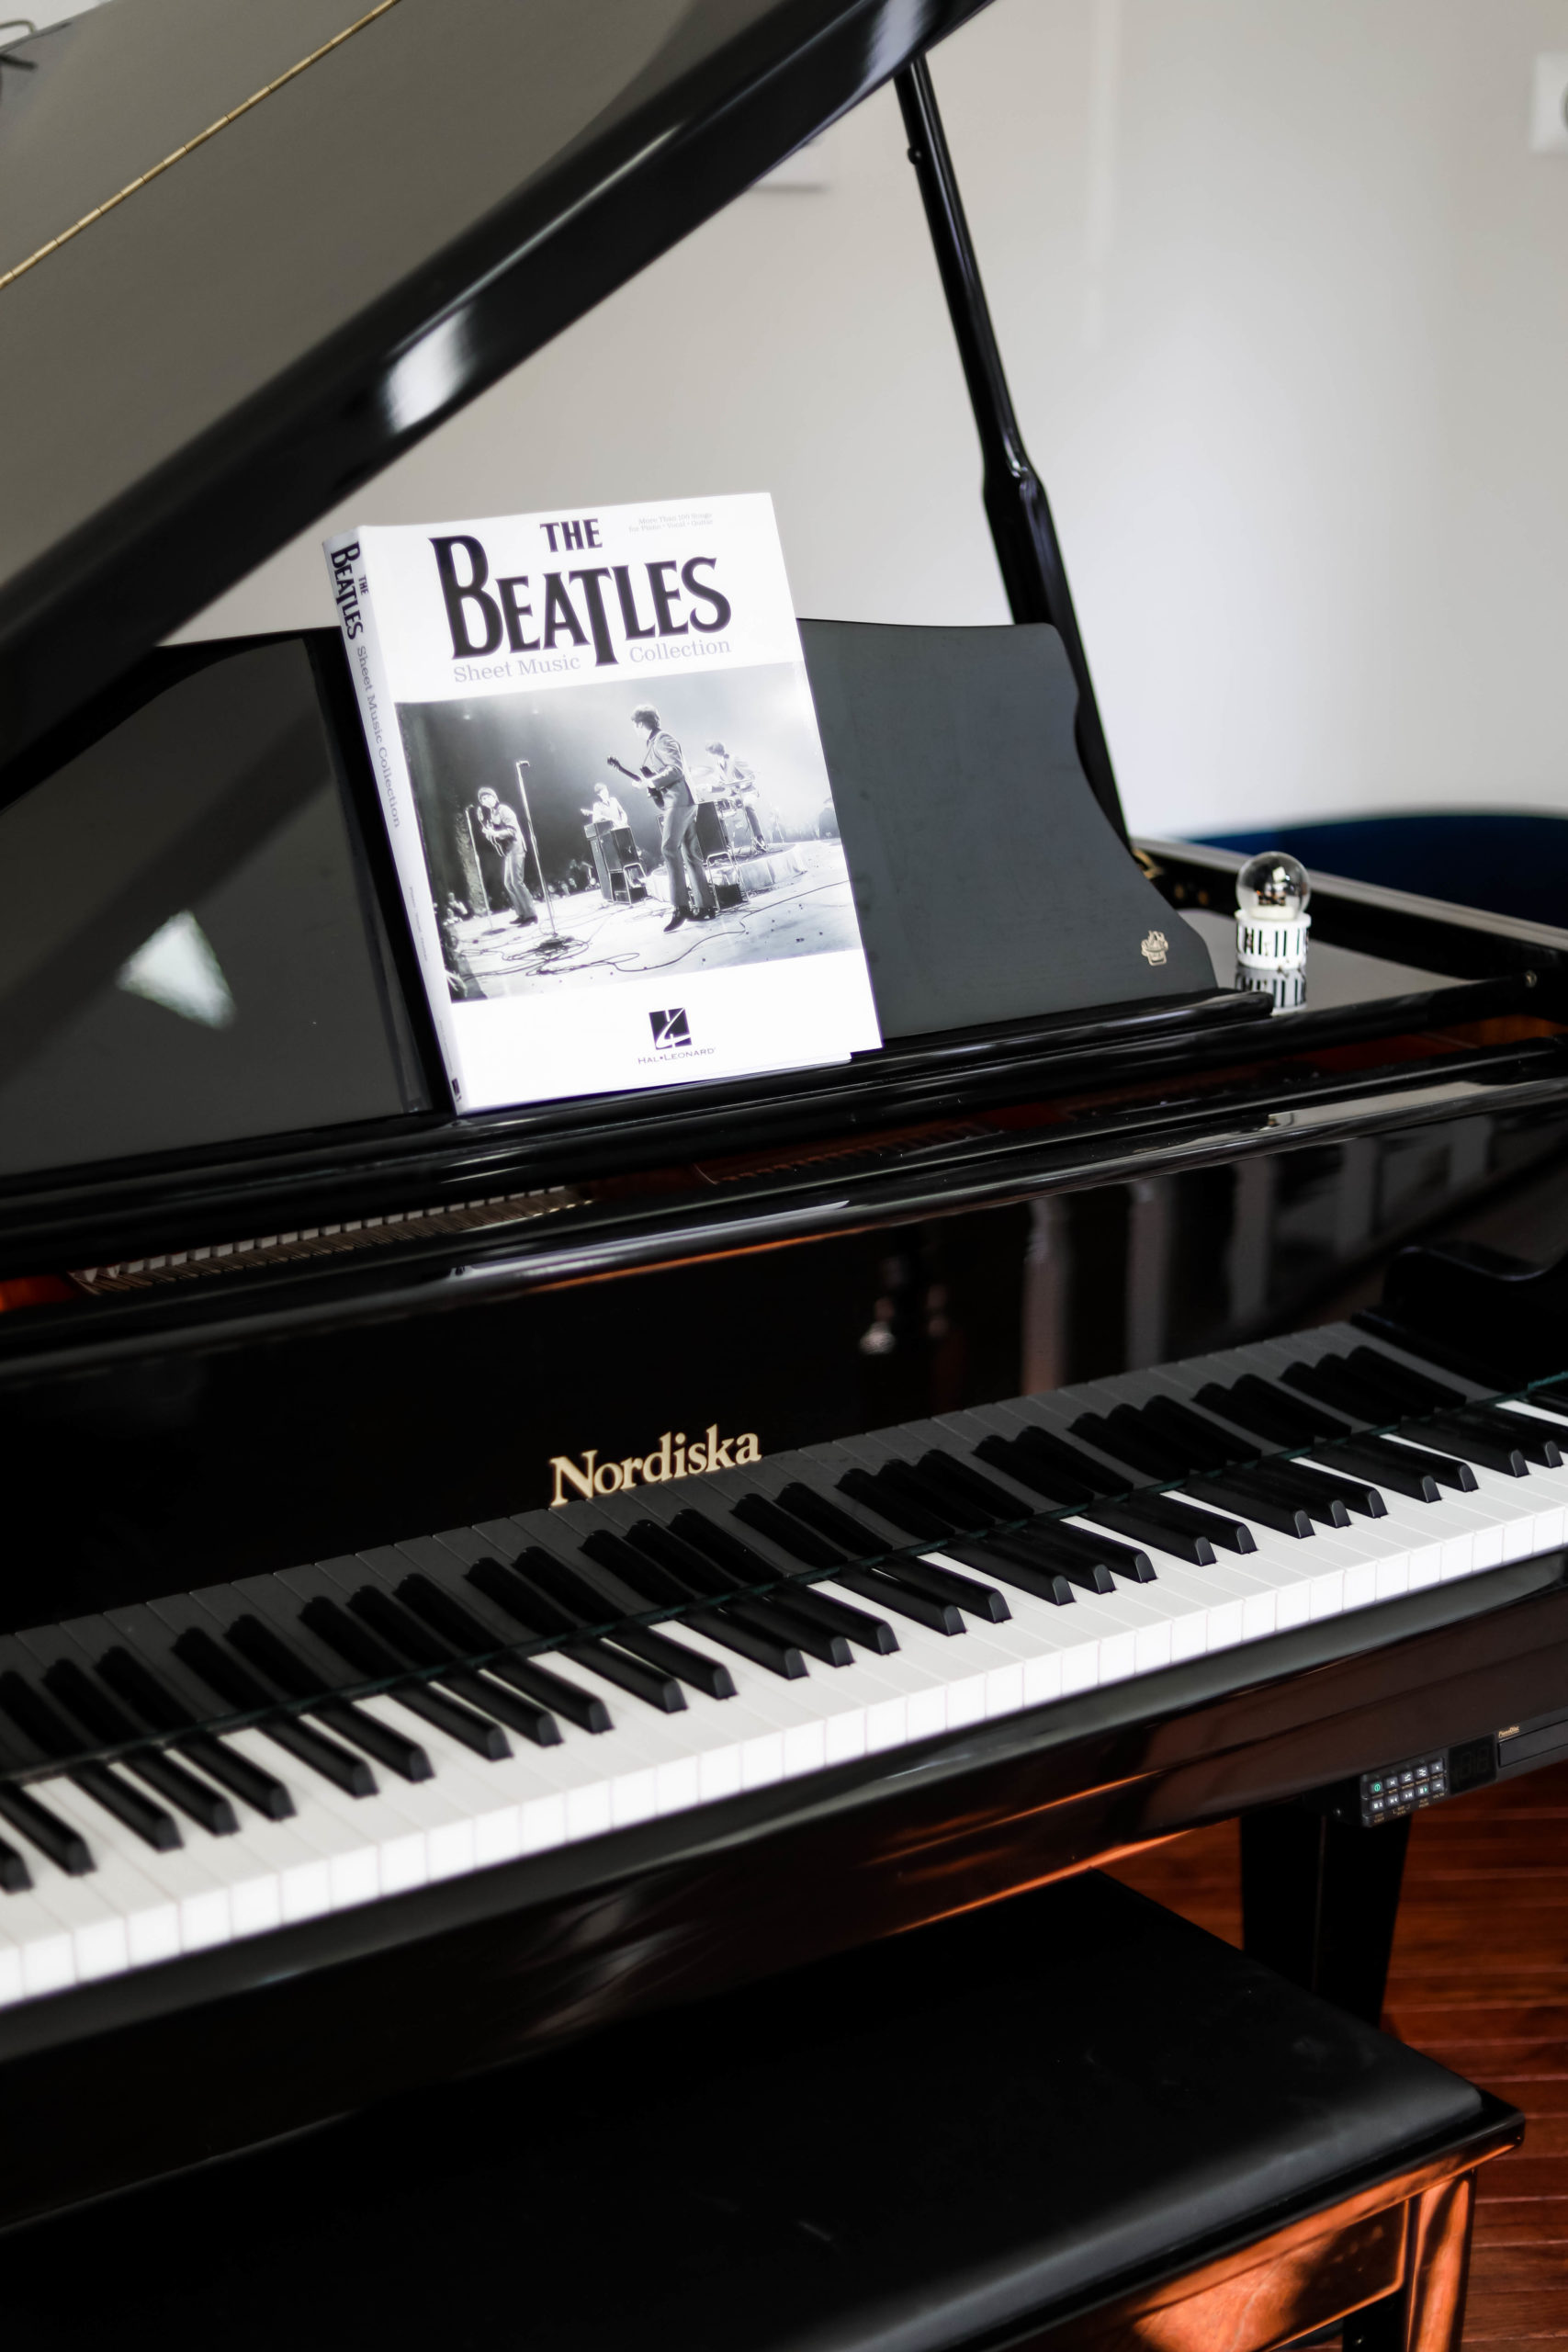 Beatles Book on piano